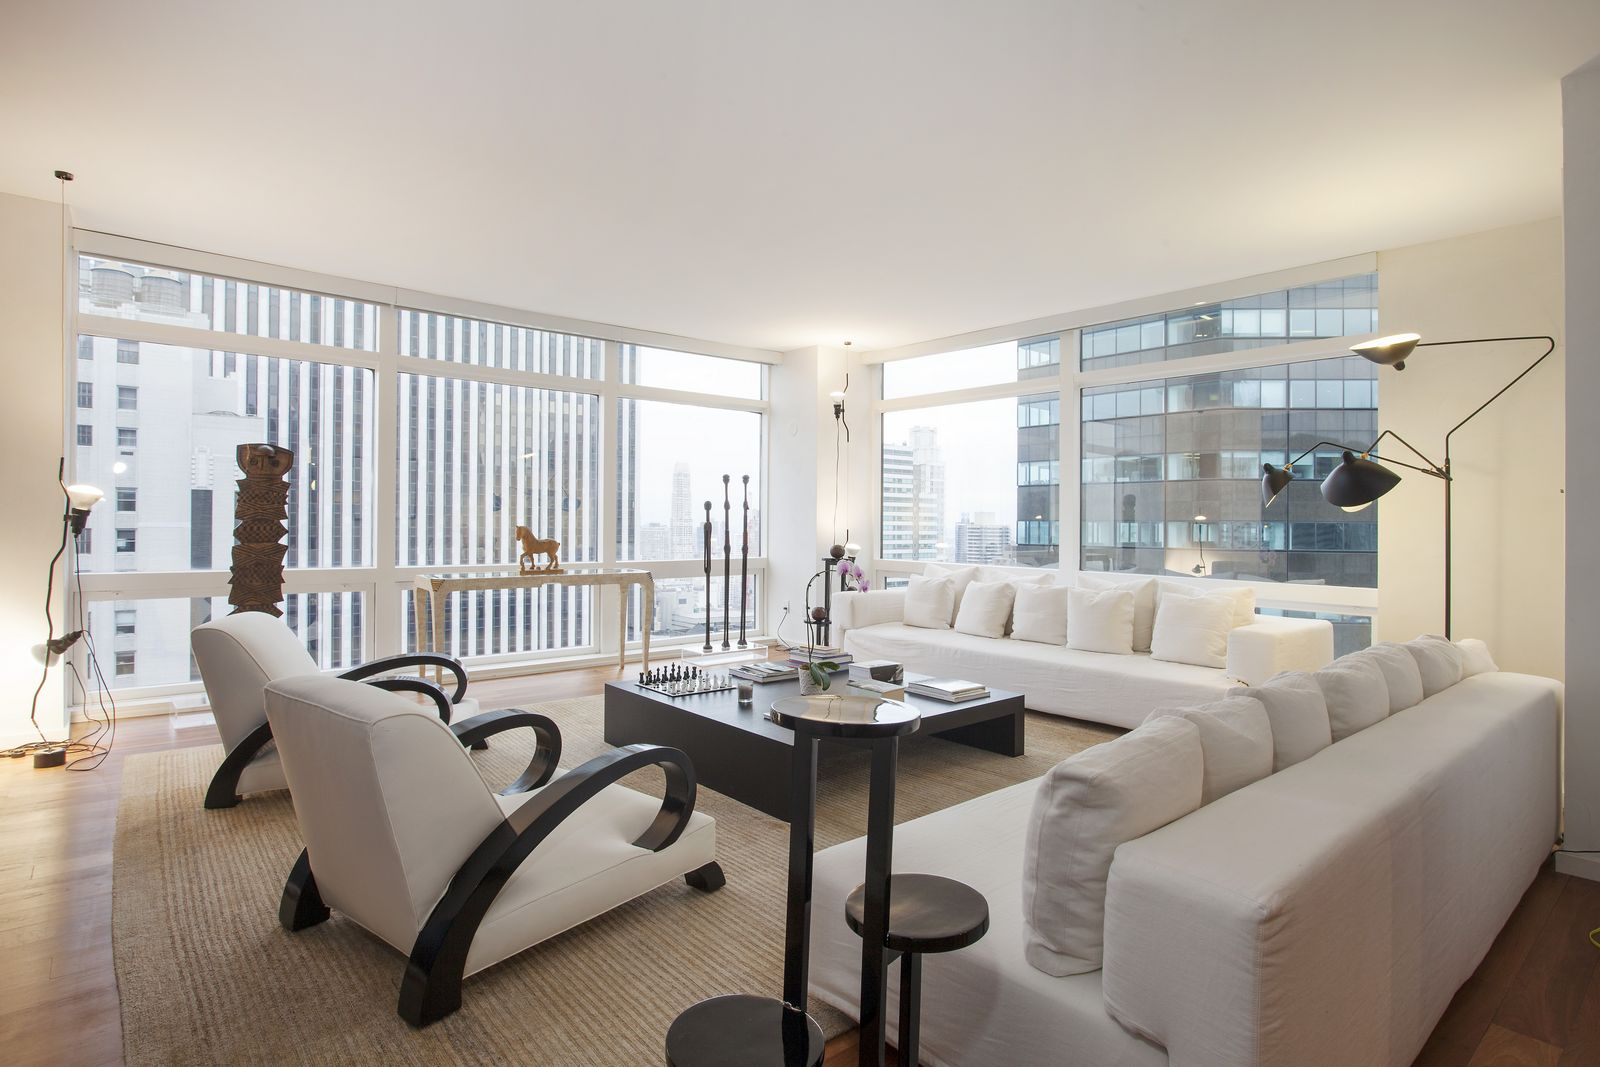 Stunning 10 million new york city apartment for sale for Luxury new york city apartments